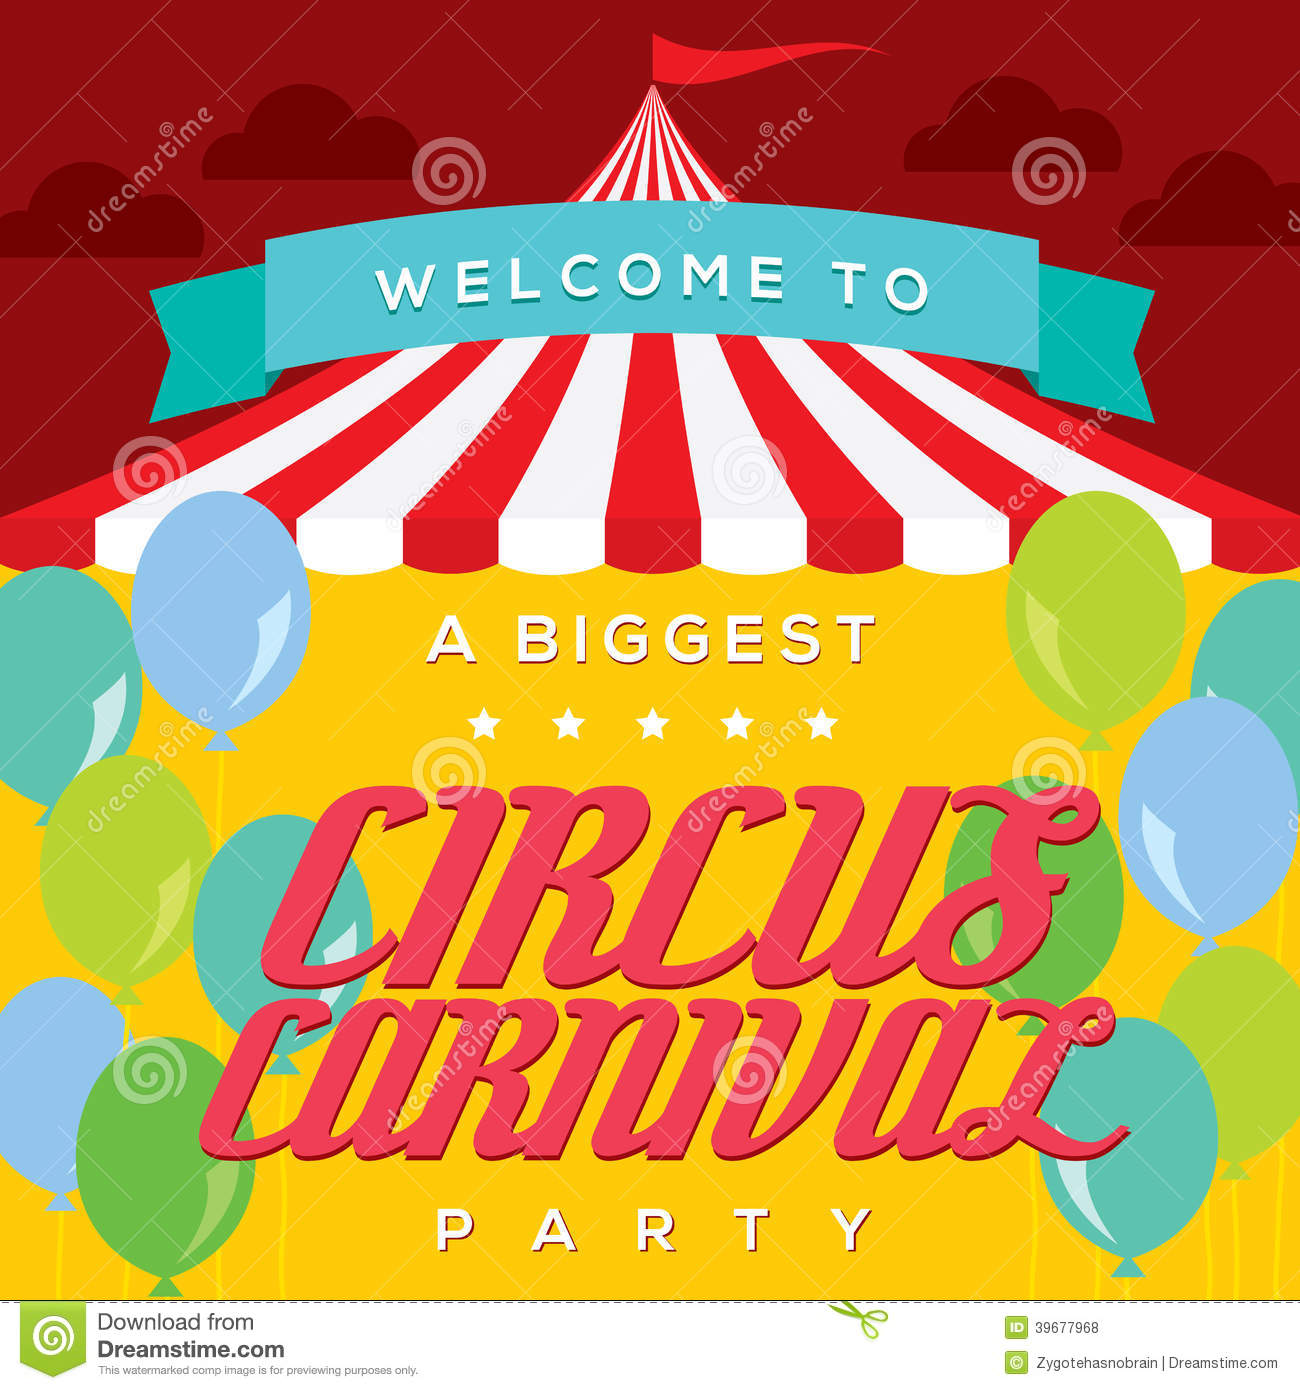 Vintage Carnival Poster Template Stock Vector - Image: 40411356